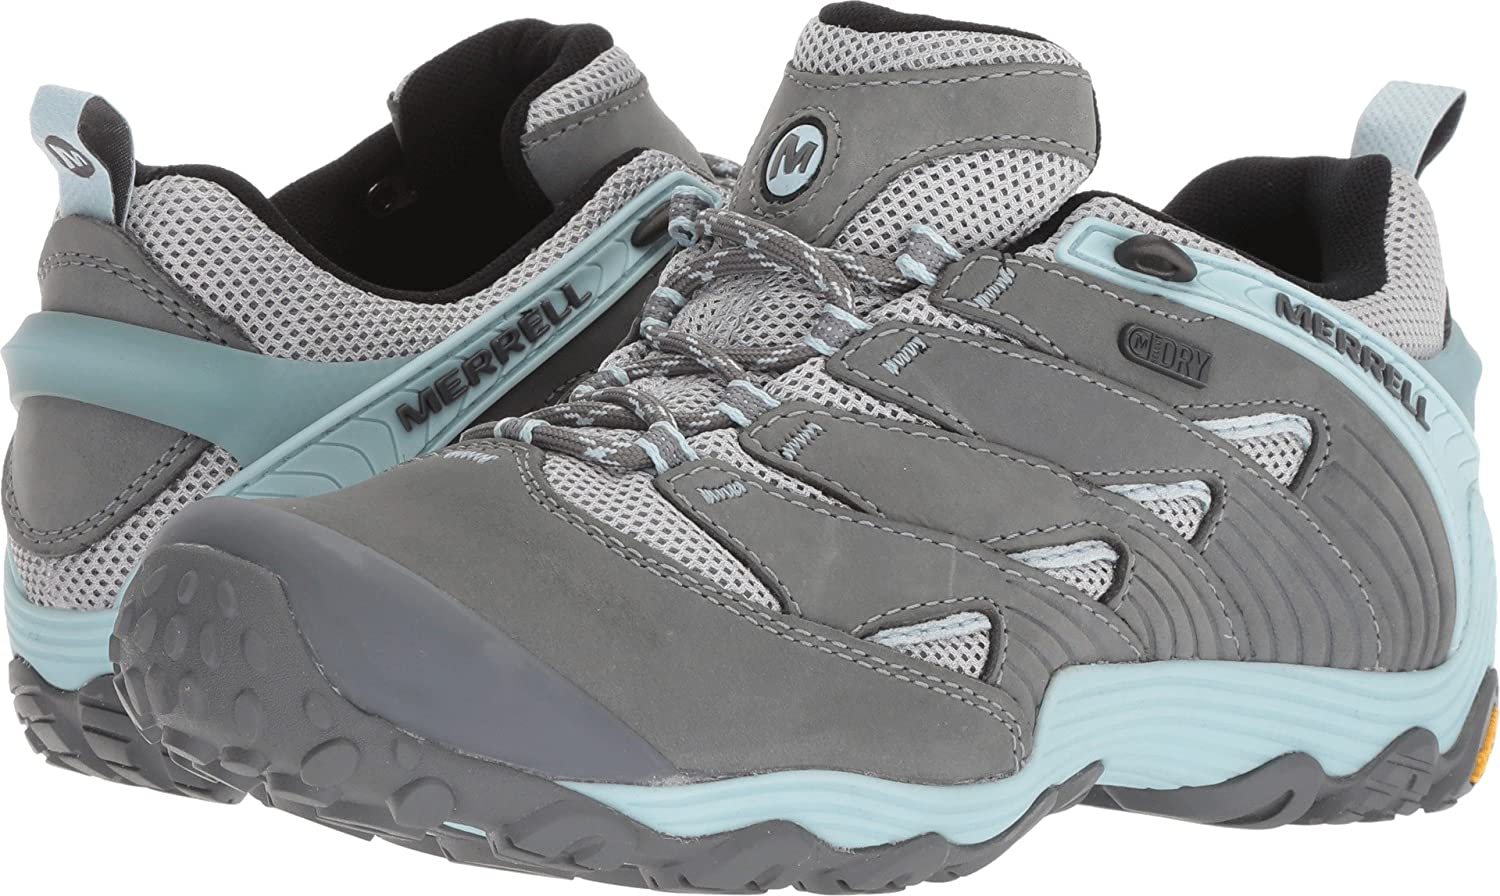 Merrell Women's Chameleon 7 Waterproof Hiking Shoe B078NG6MM7 10 M US|Frozen Blue